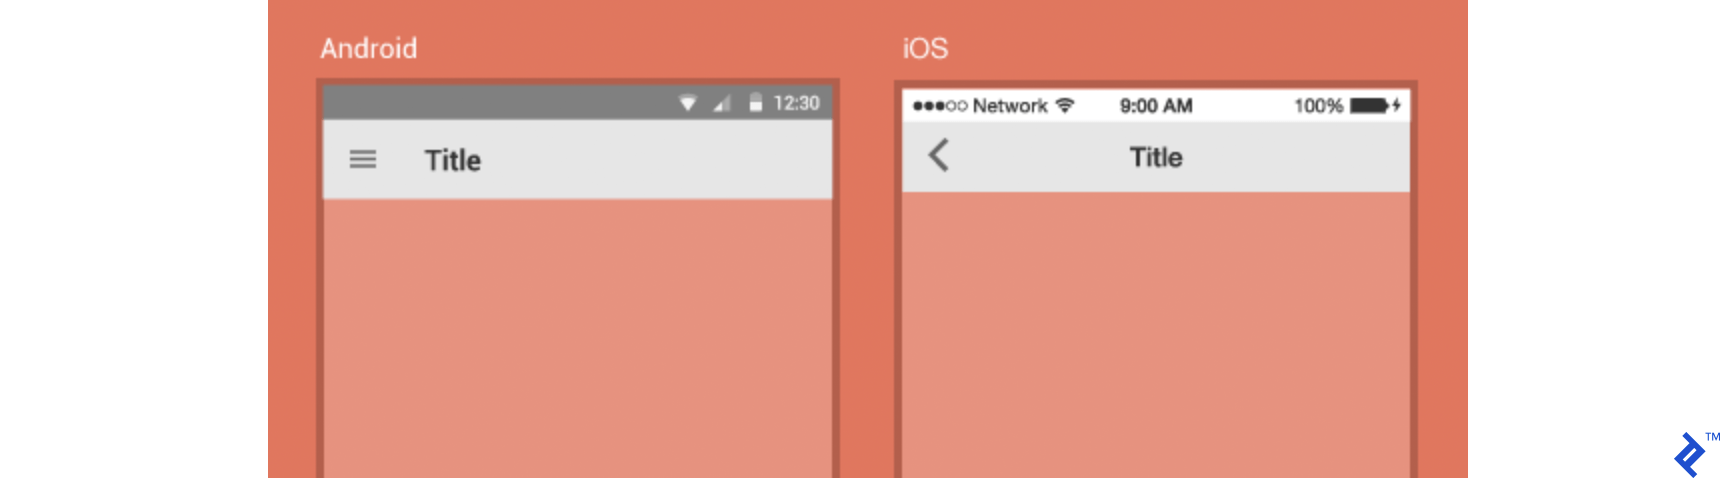 iOS and Android status bars and headers